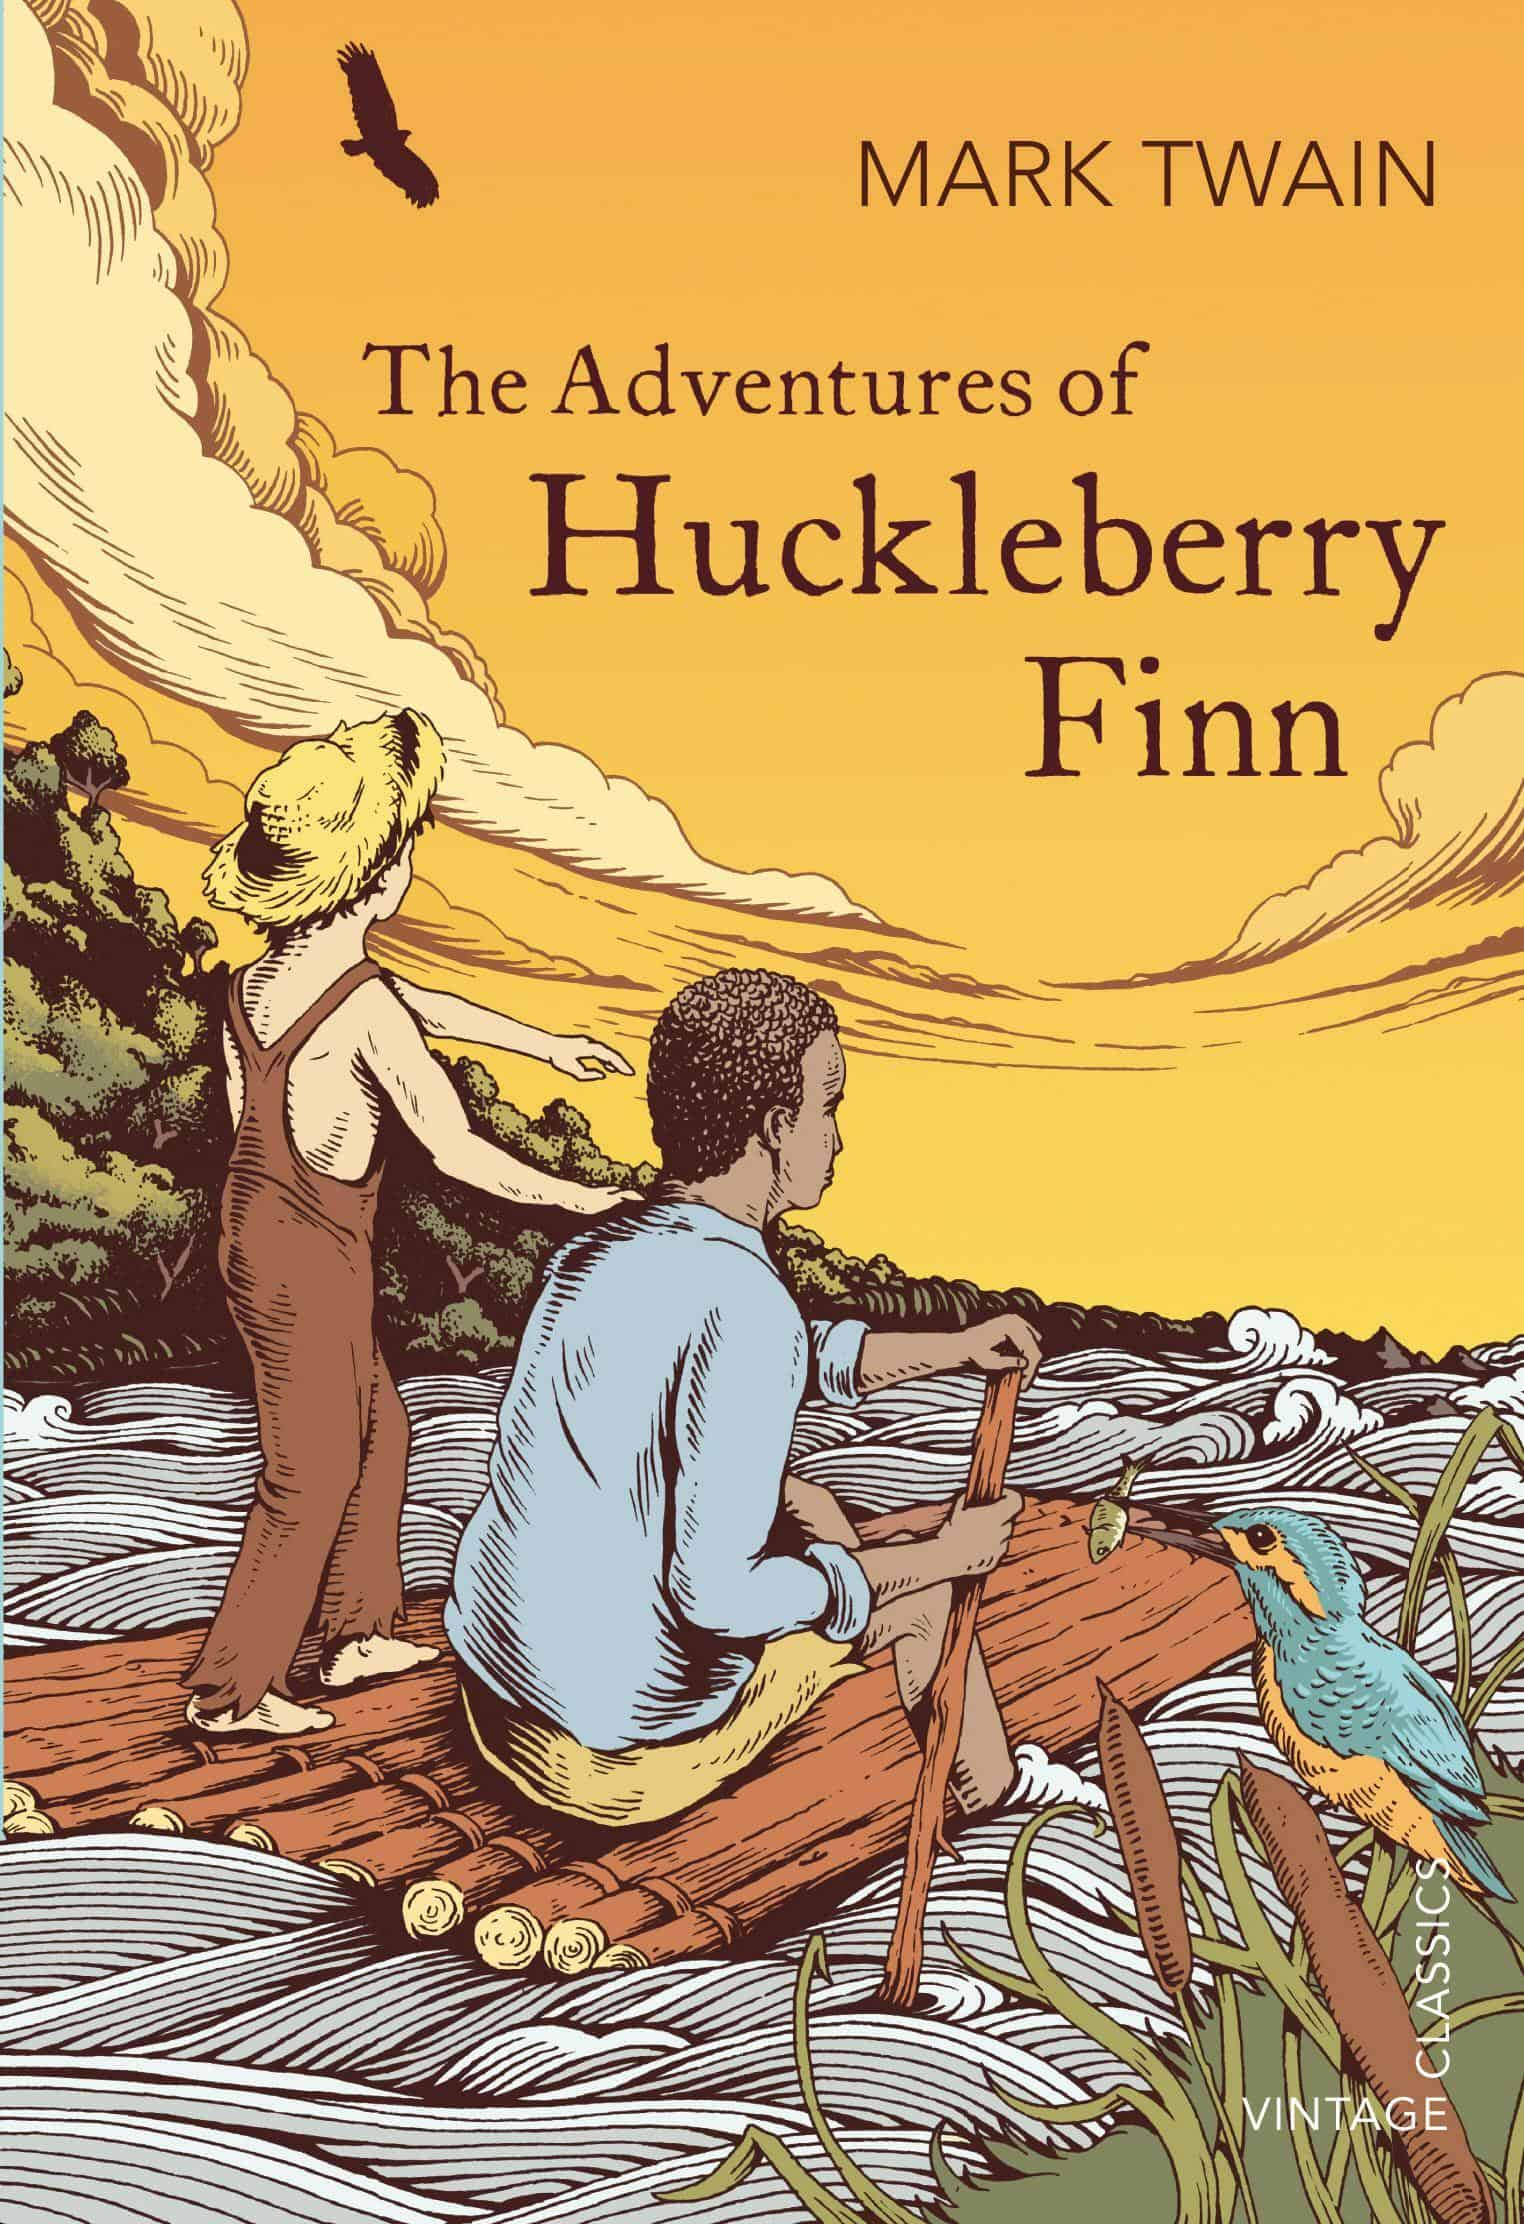 Huckleberry Finn Books to Read